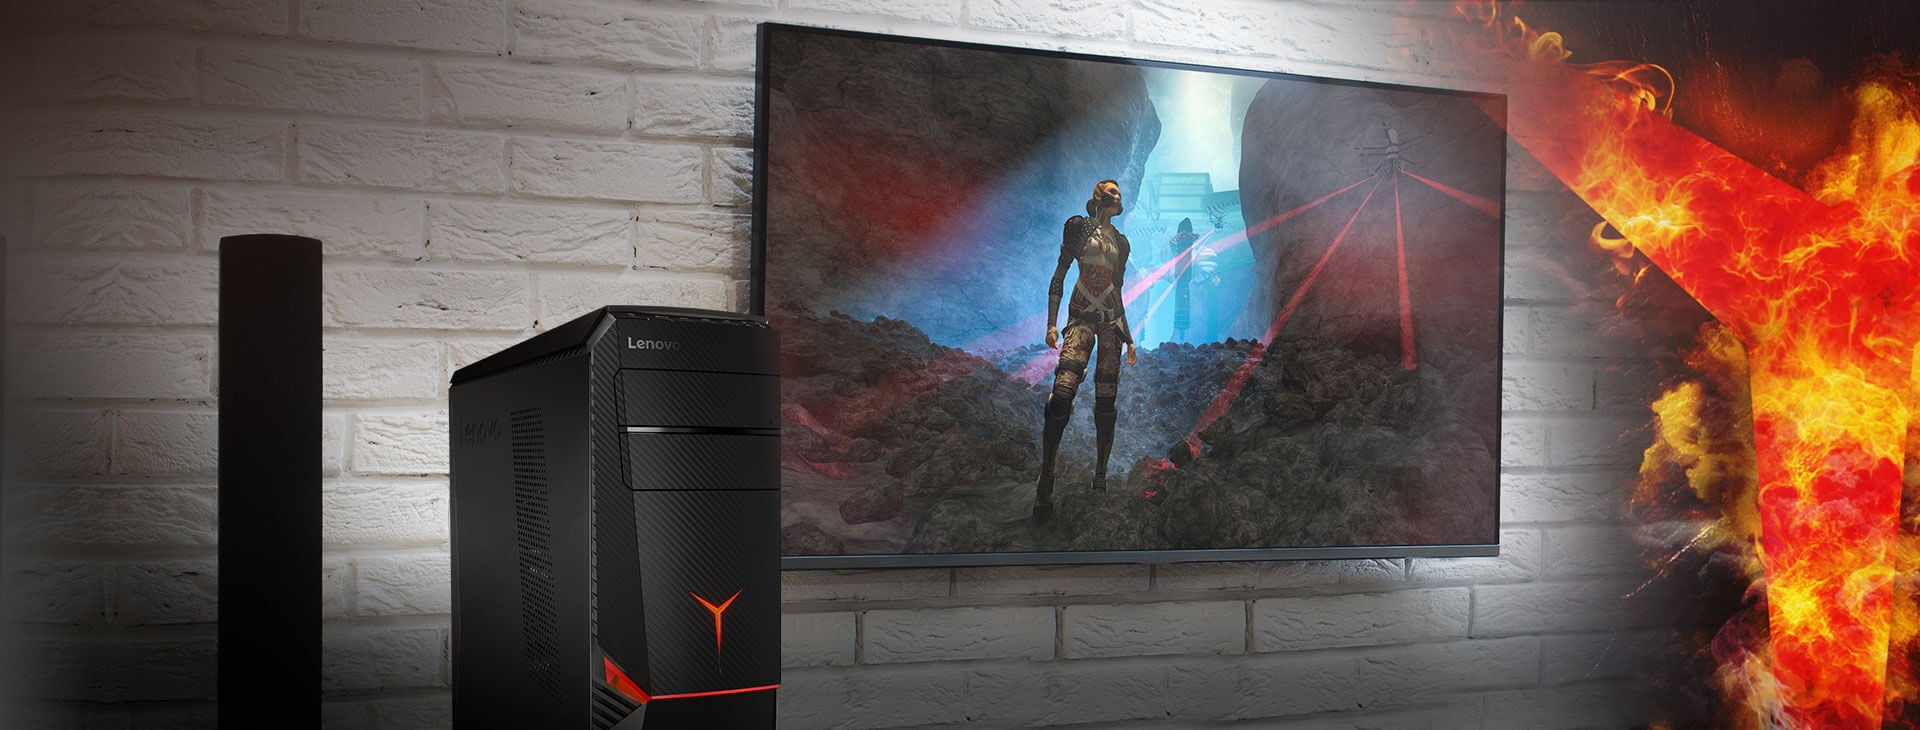 Игровой ПК Lenovo Legion Y720 Tower